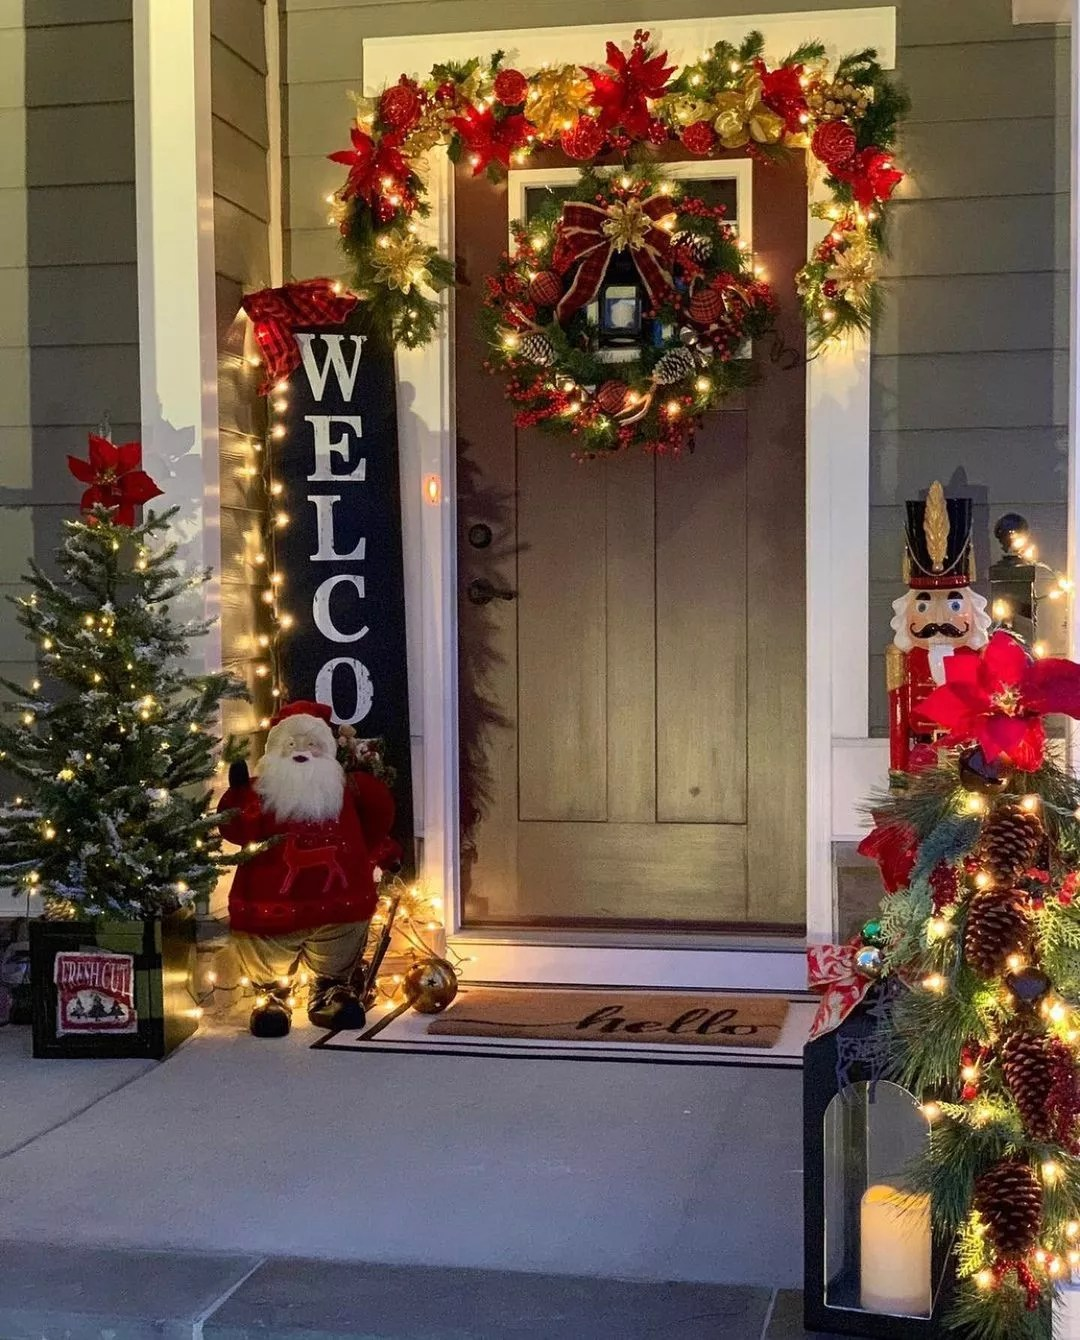 A front porch lights up to reveal a Santa Claus statue on one side of the door, and a nutcracker on the other. Photo by Instagram user @nhomedesignideas.